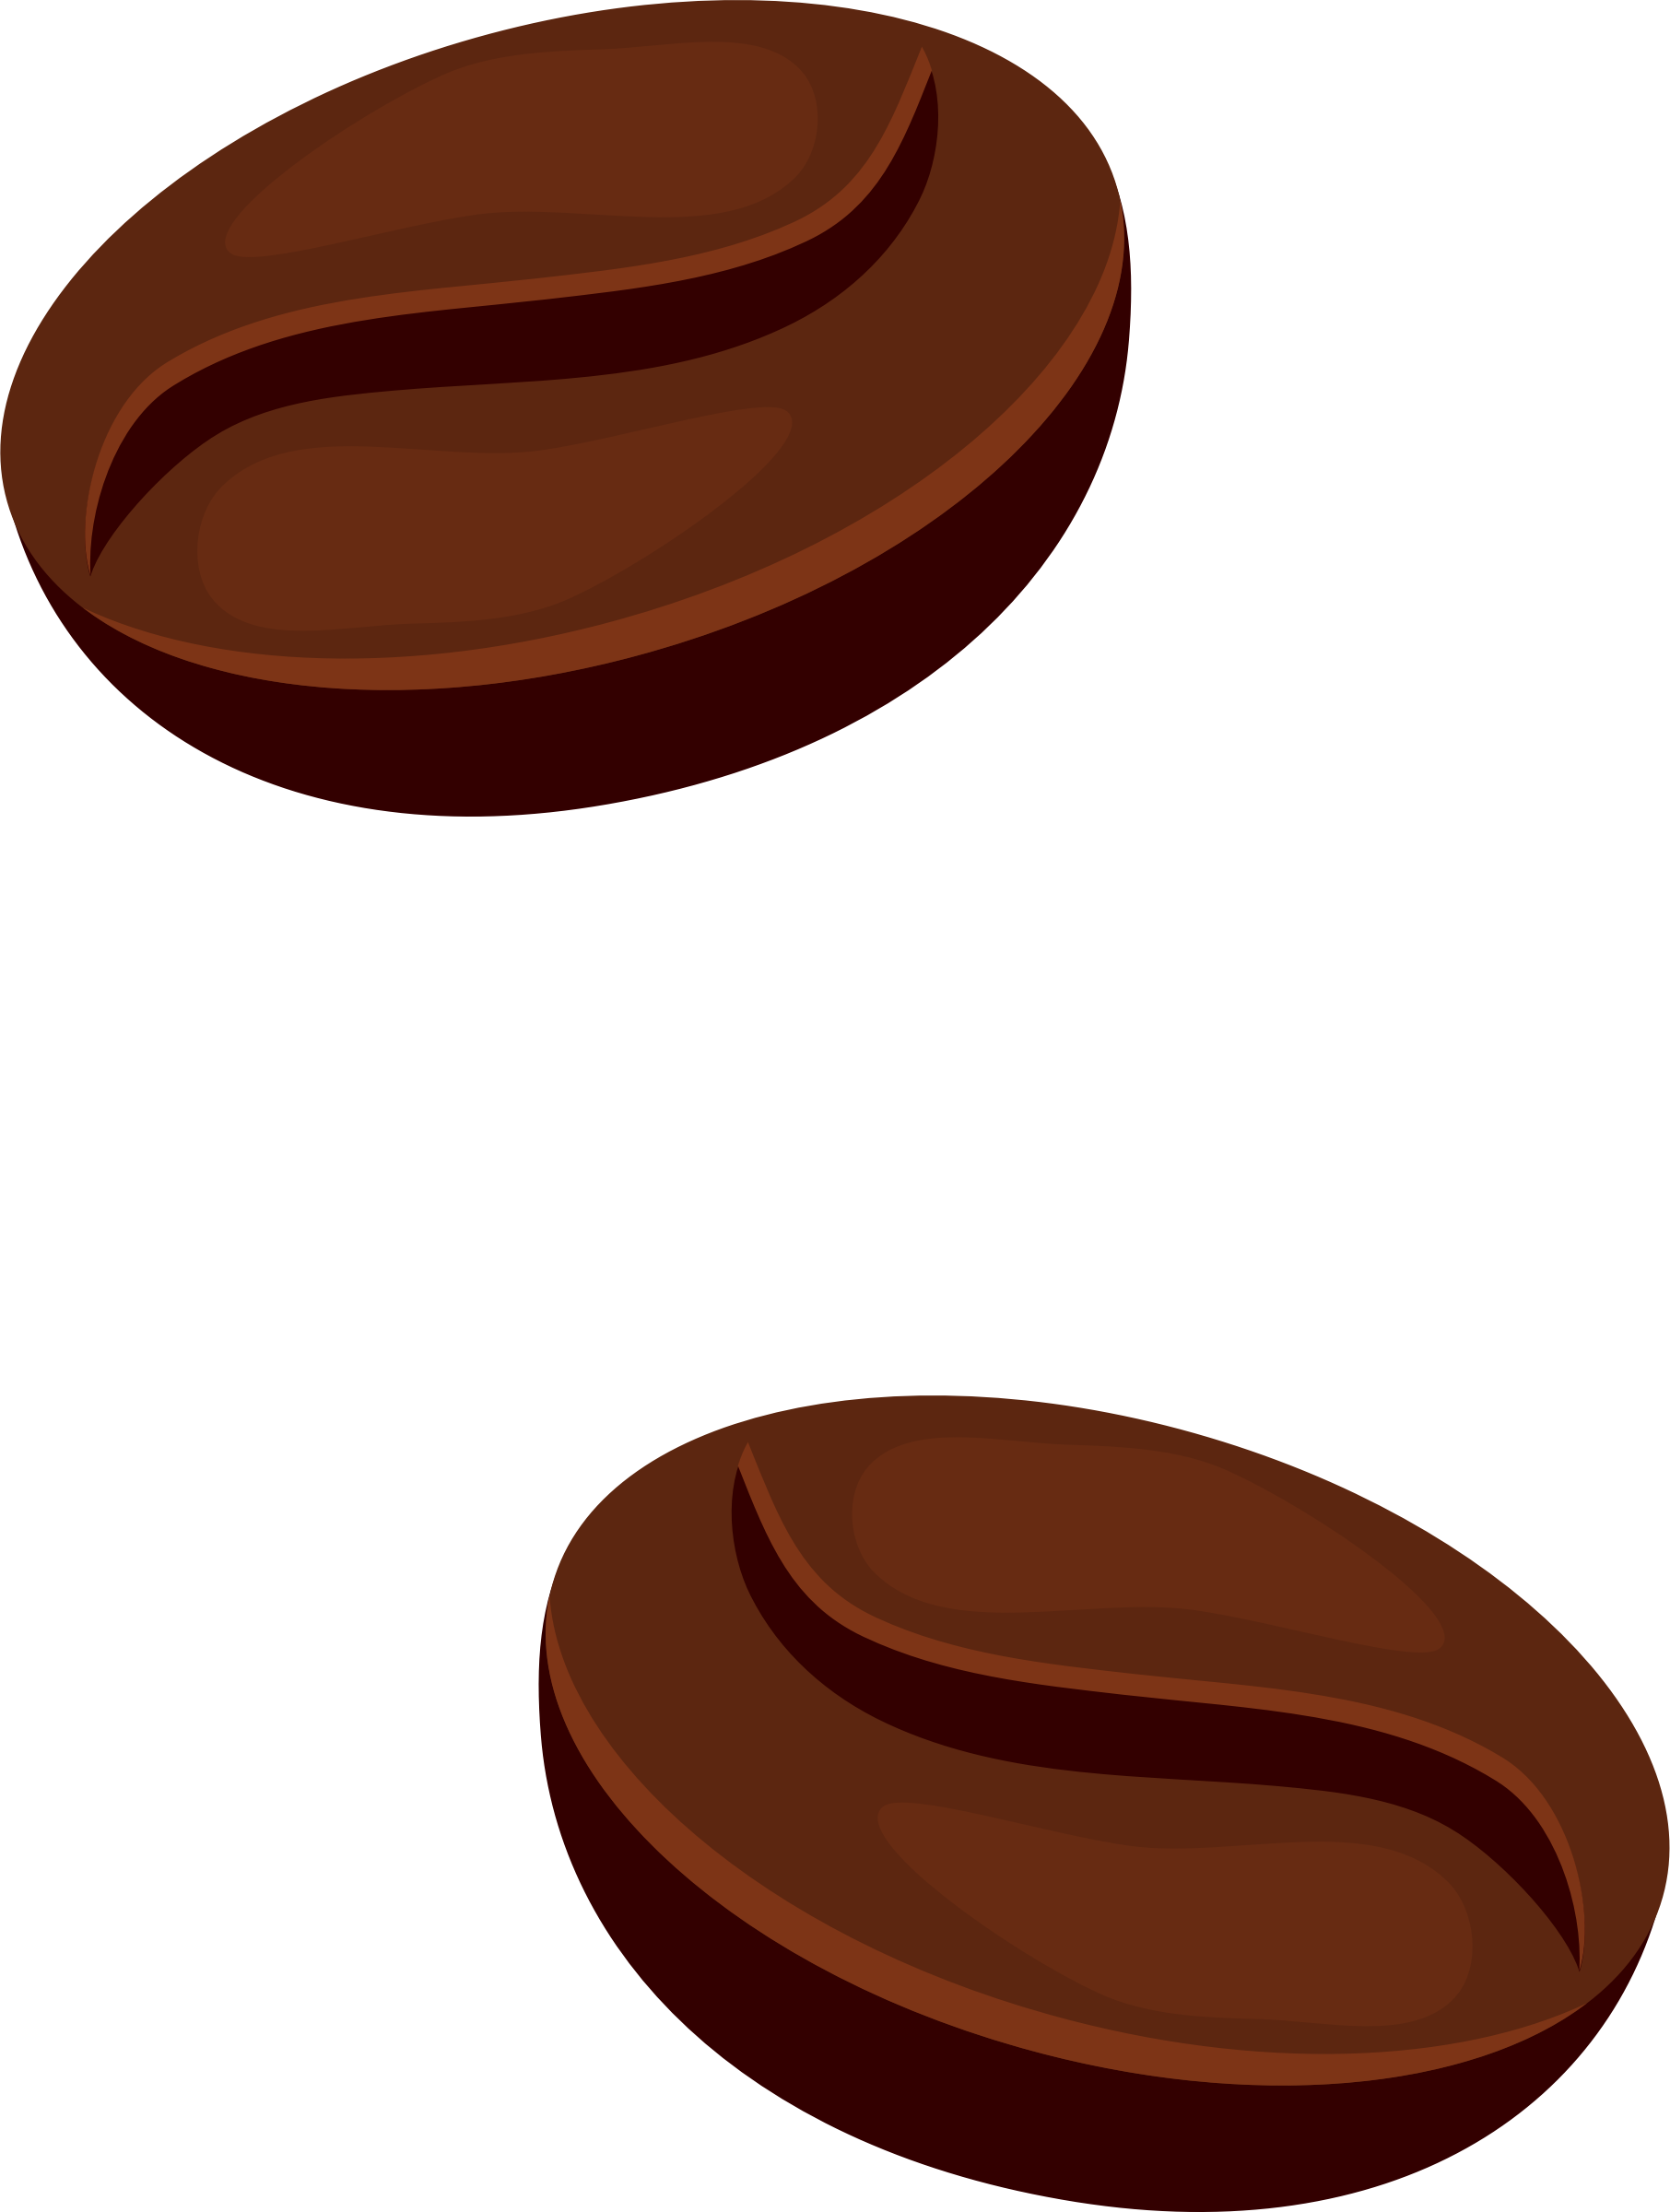 Beans vector clip art. Clipart coffee big image